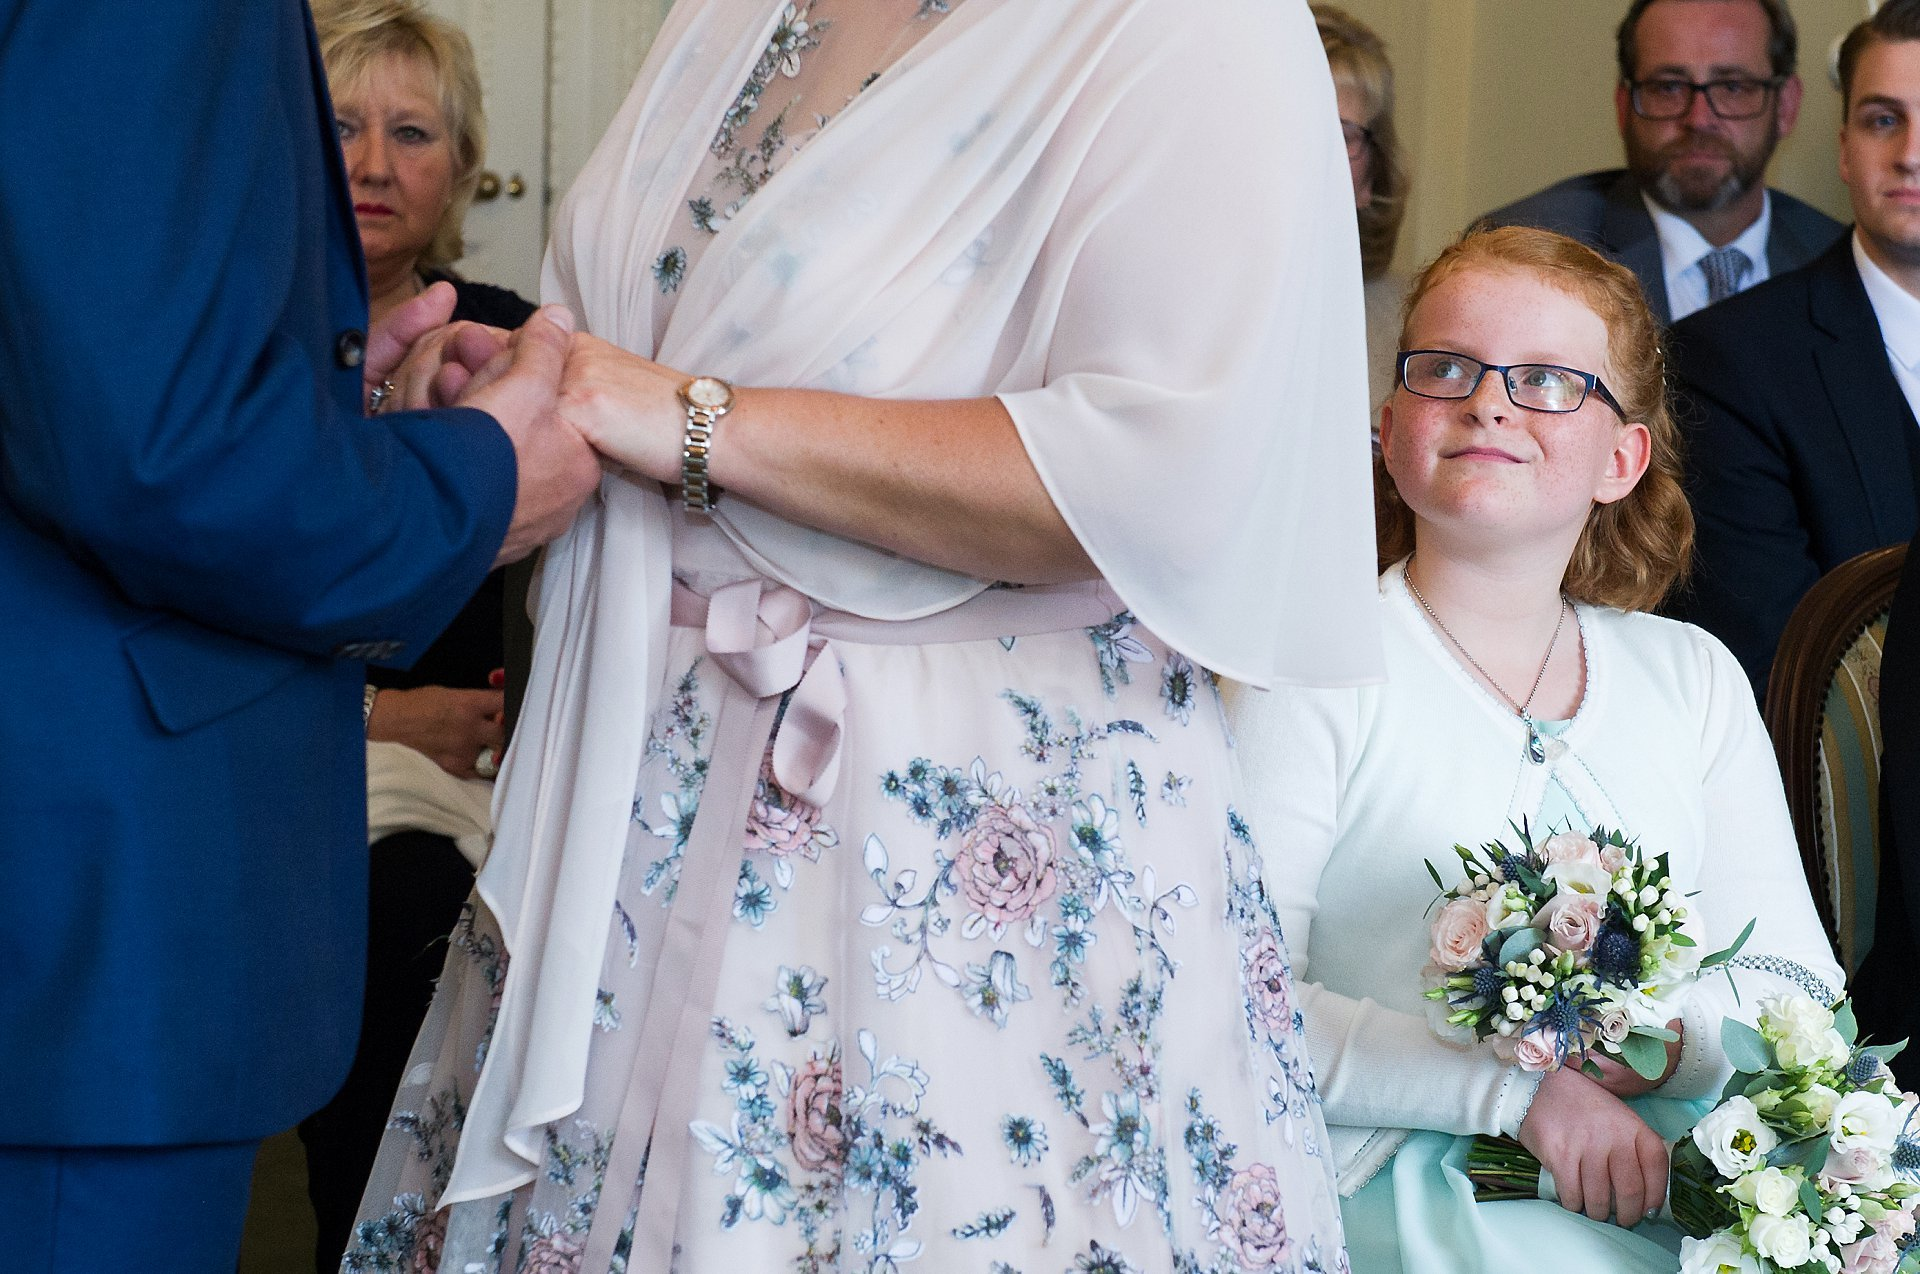 The bride's daughter watches as her mother excahnges vows during this West Sussex civil ceremony